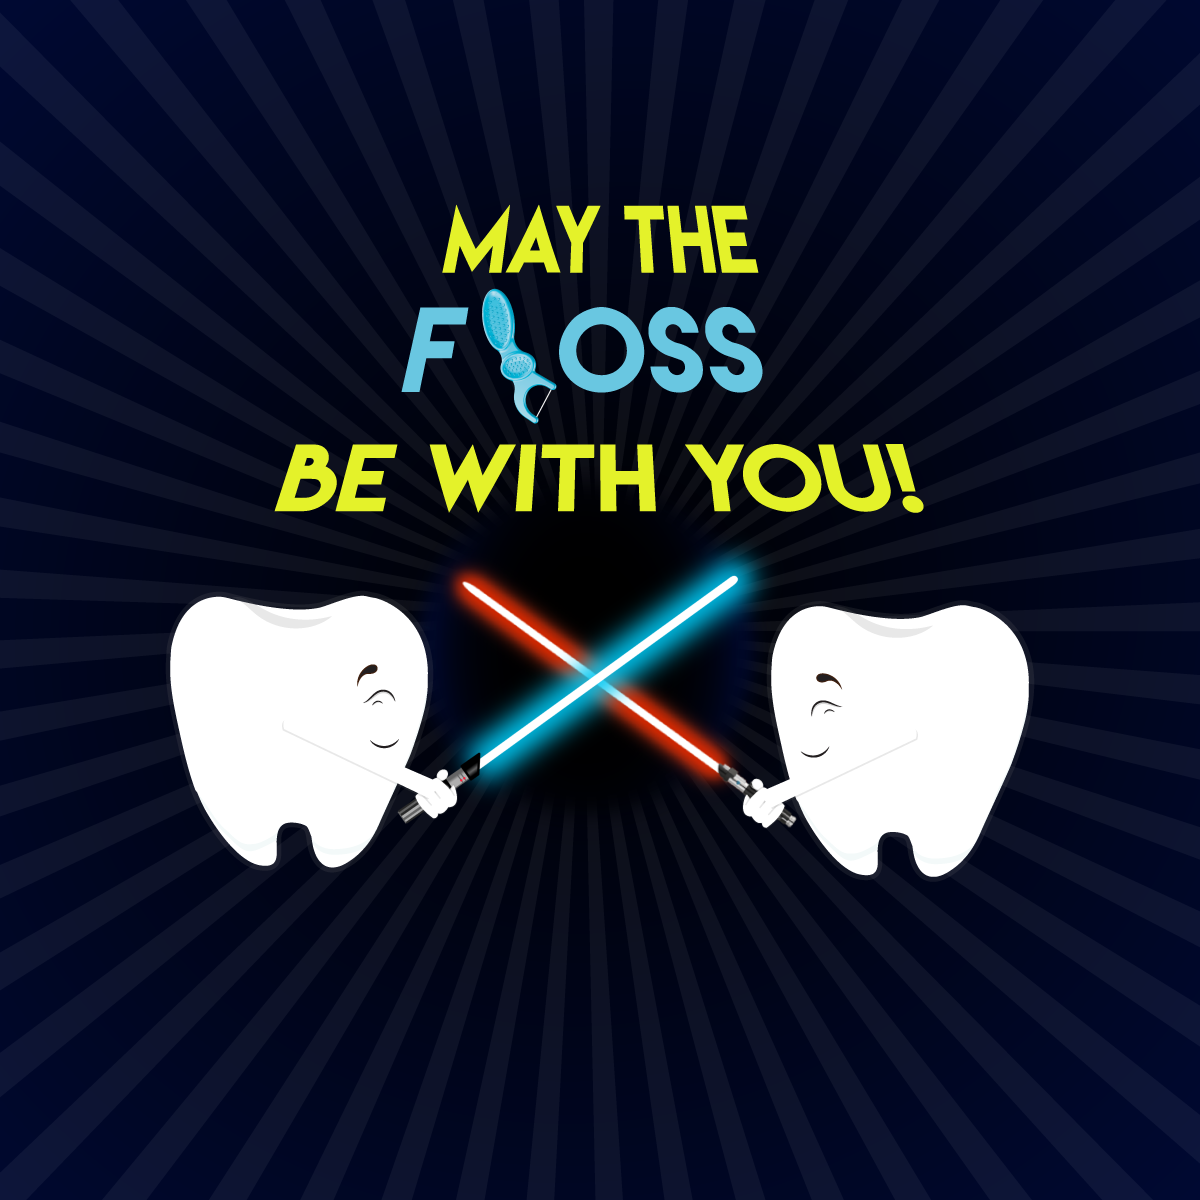 Star Wars Day: May The Floss Be With You! Happy Star Wars Day!